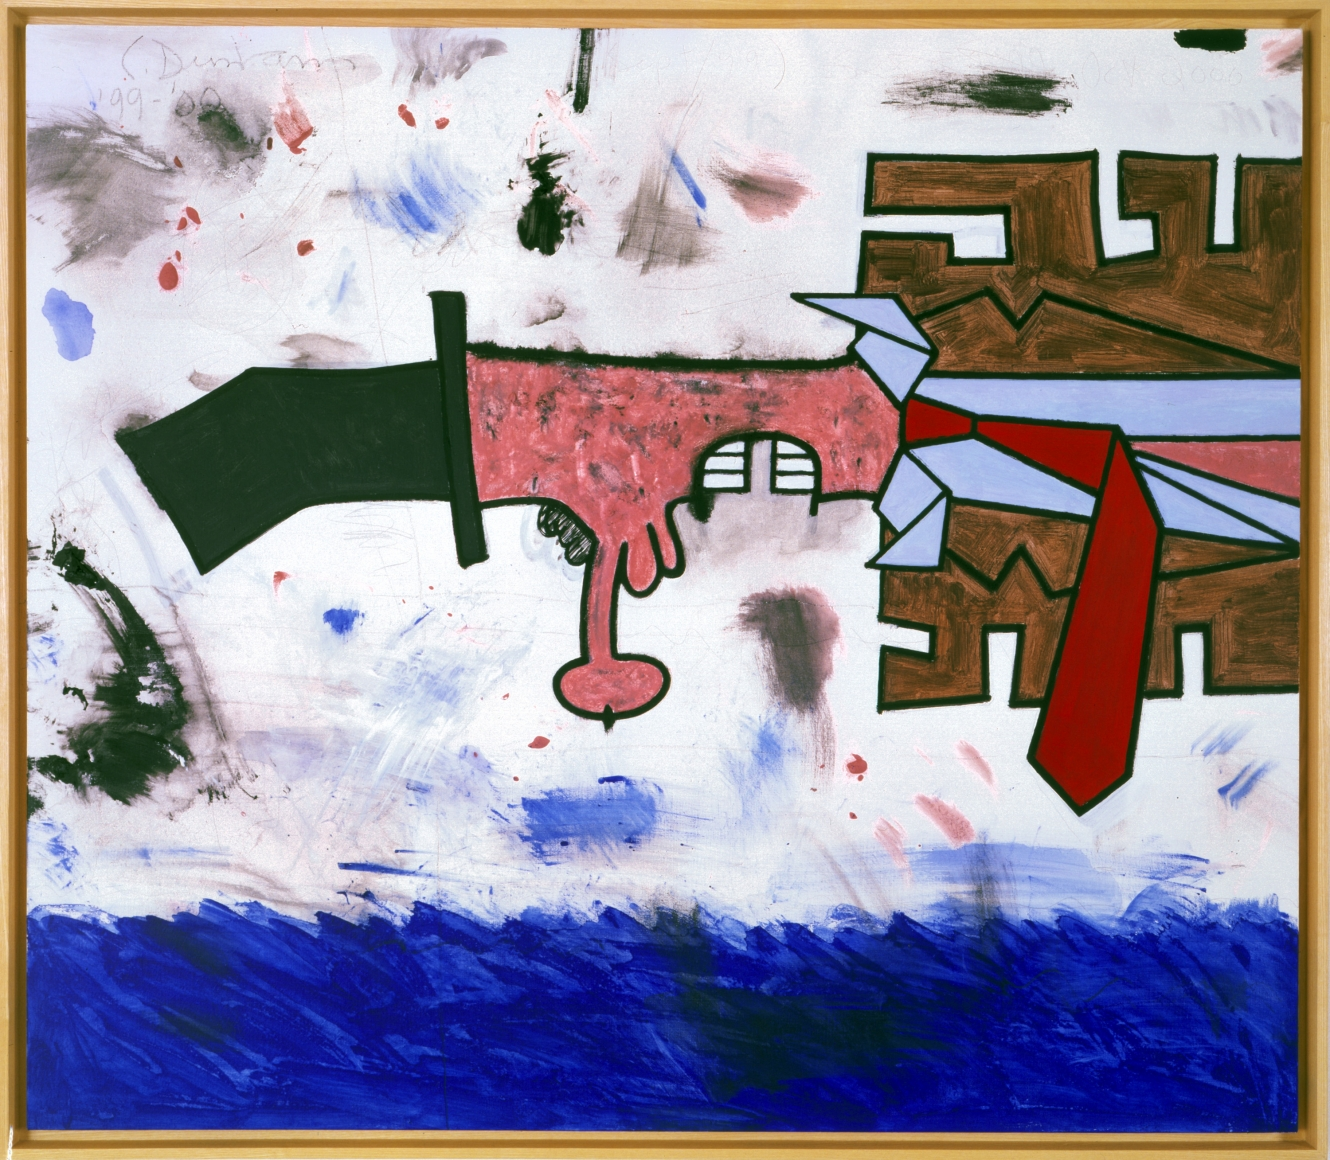 CARROLL DUNHAM Over the water, 1999/2000